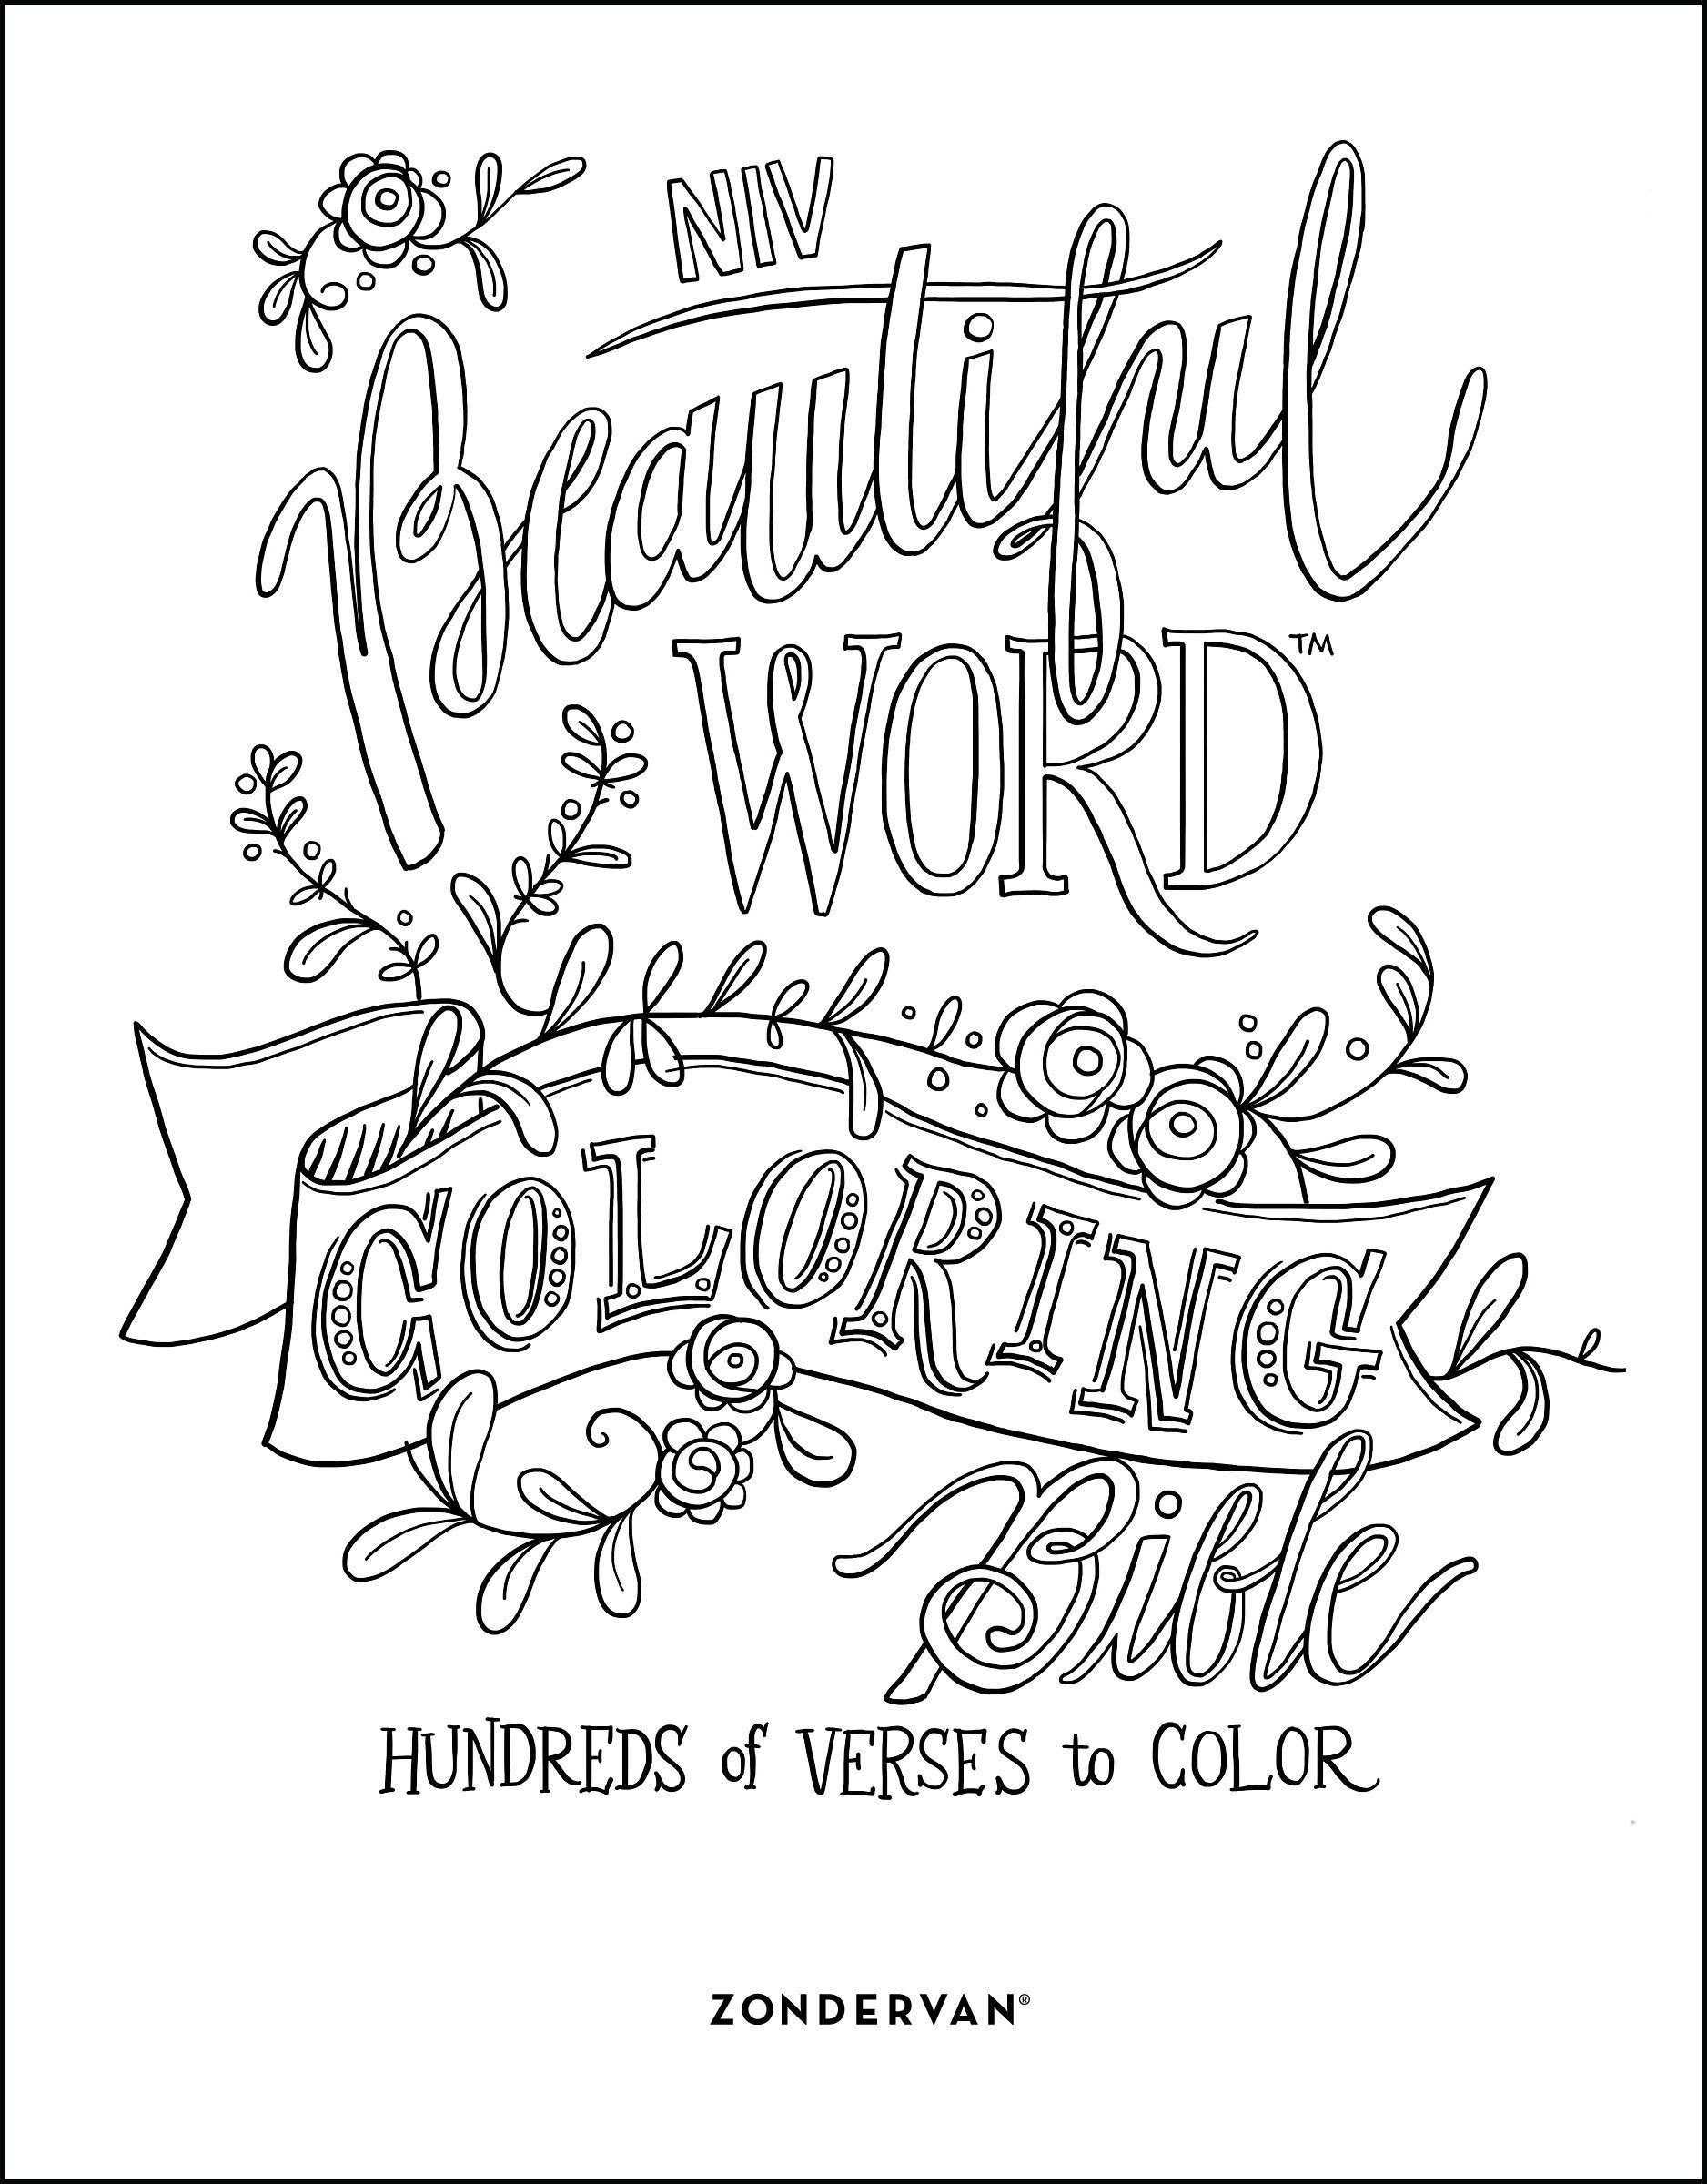 NIV Beautiful Word Coloring Bible Hardcover Hundreds Of Verses To Color Zondervan